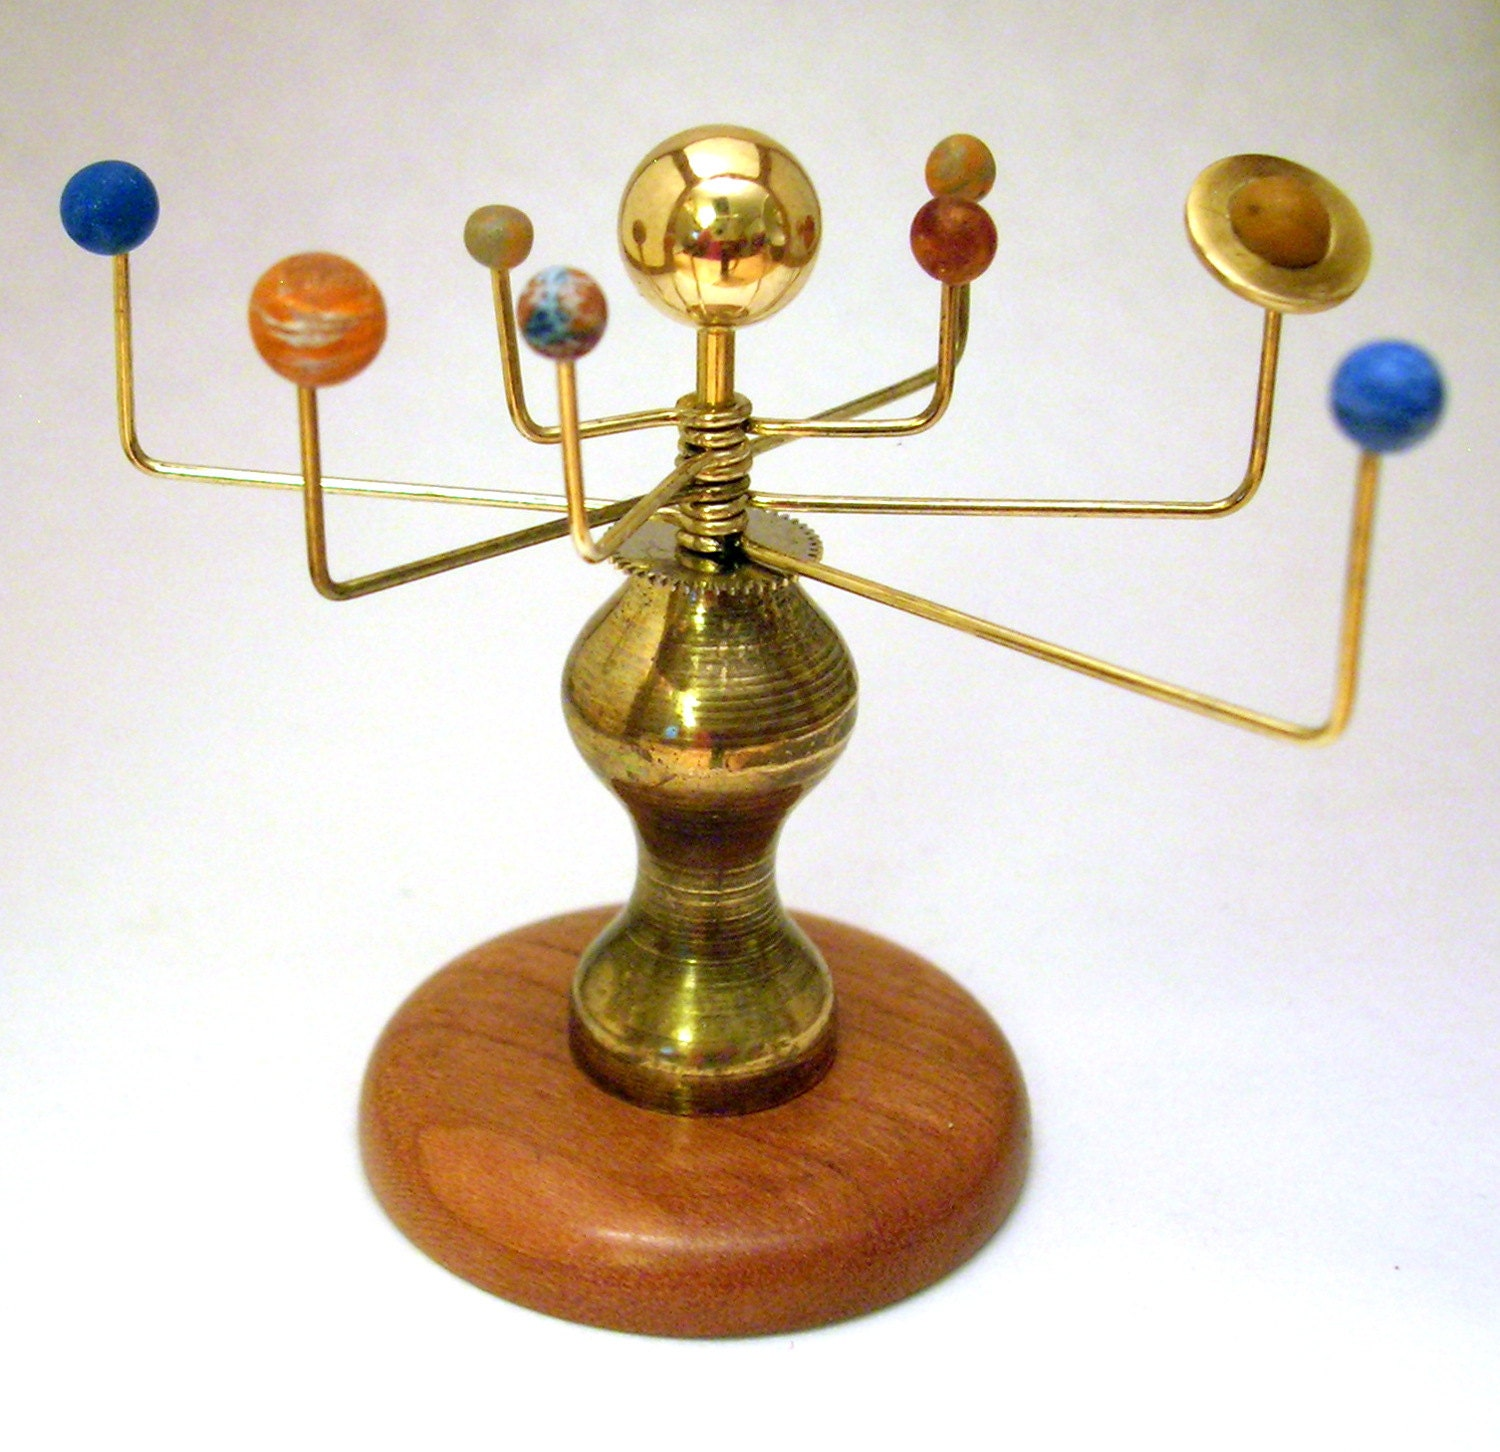 solar system orrery - photo #7